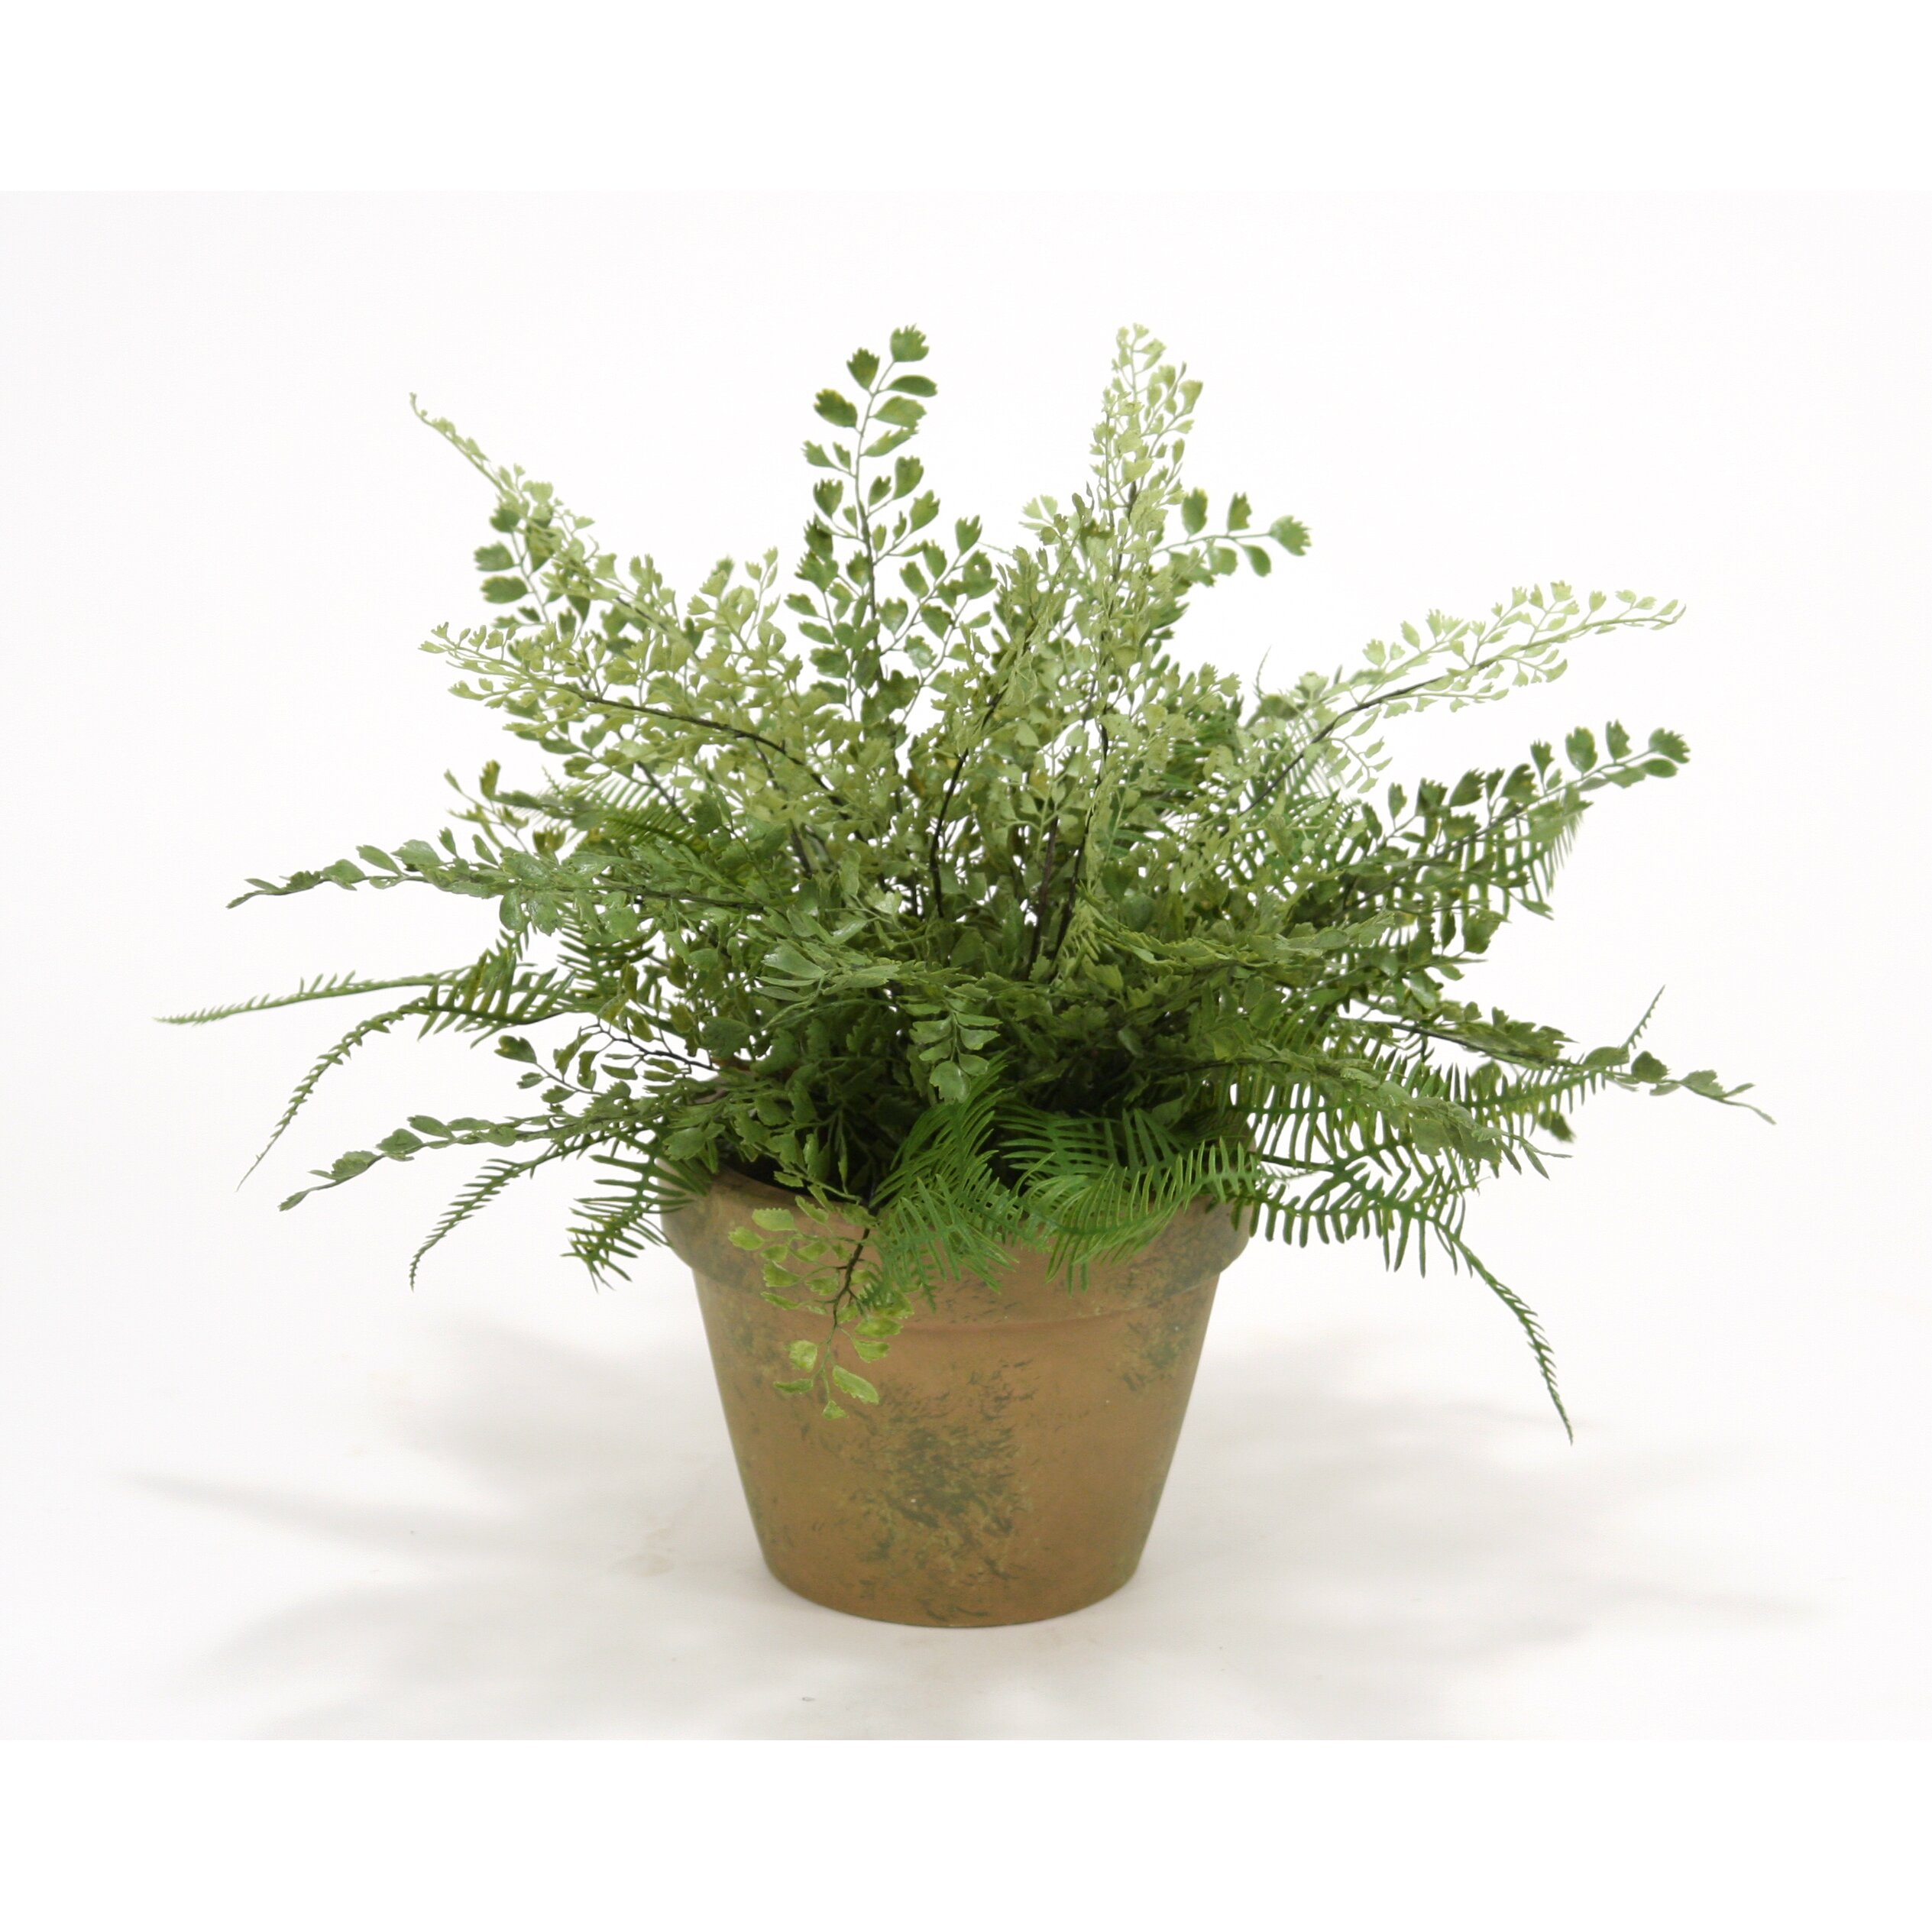 Best Place To Plant Asparagus: Distinctive Designs Maiden Hair And Asparagus Fern Desk